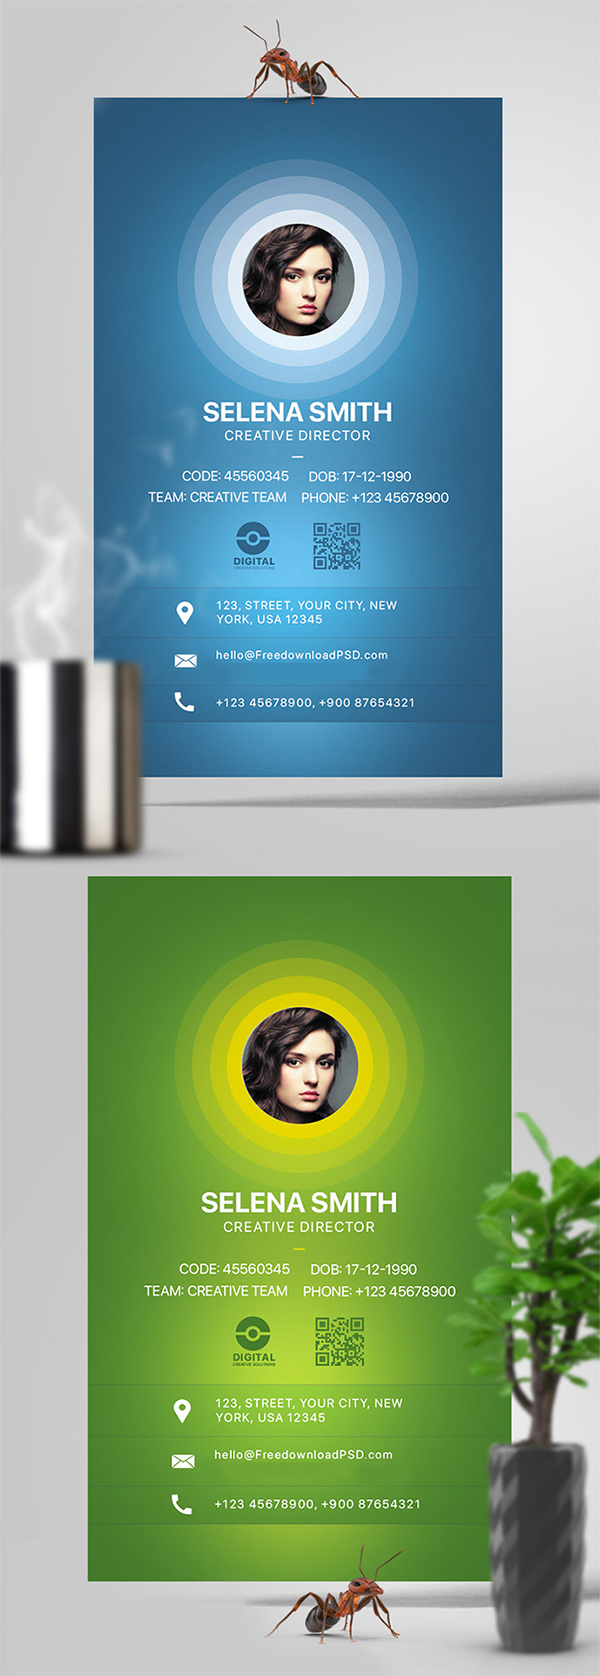 Freebie : Elegant Office Identity Card Design (PSD)